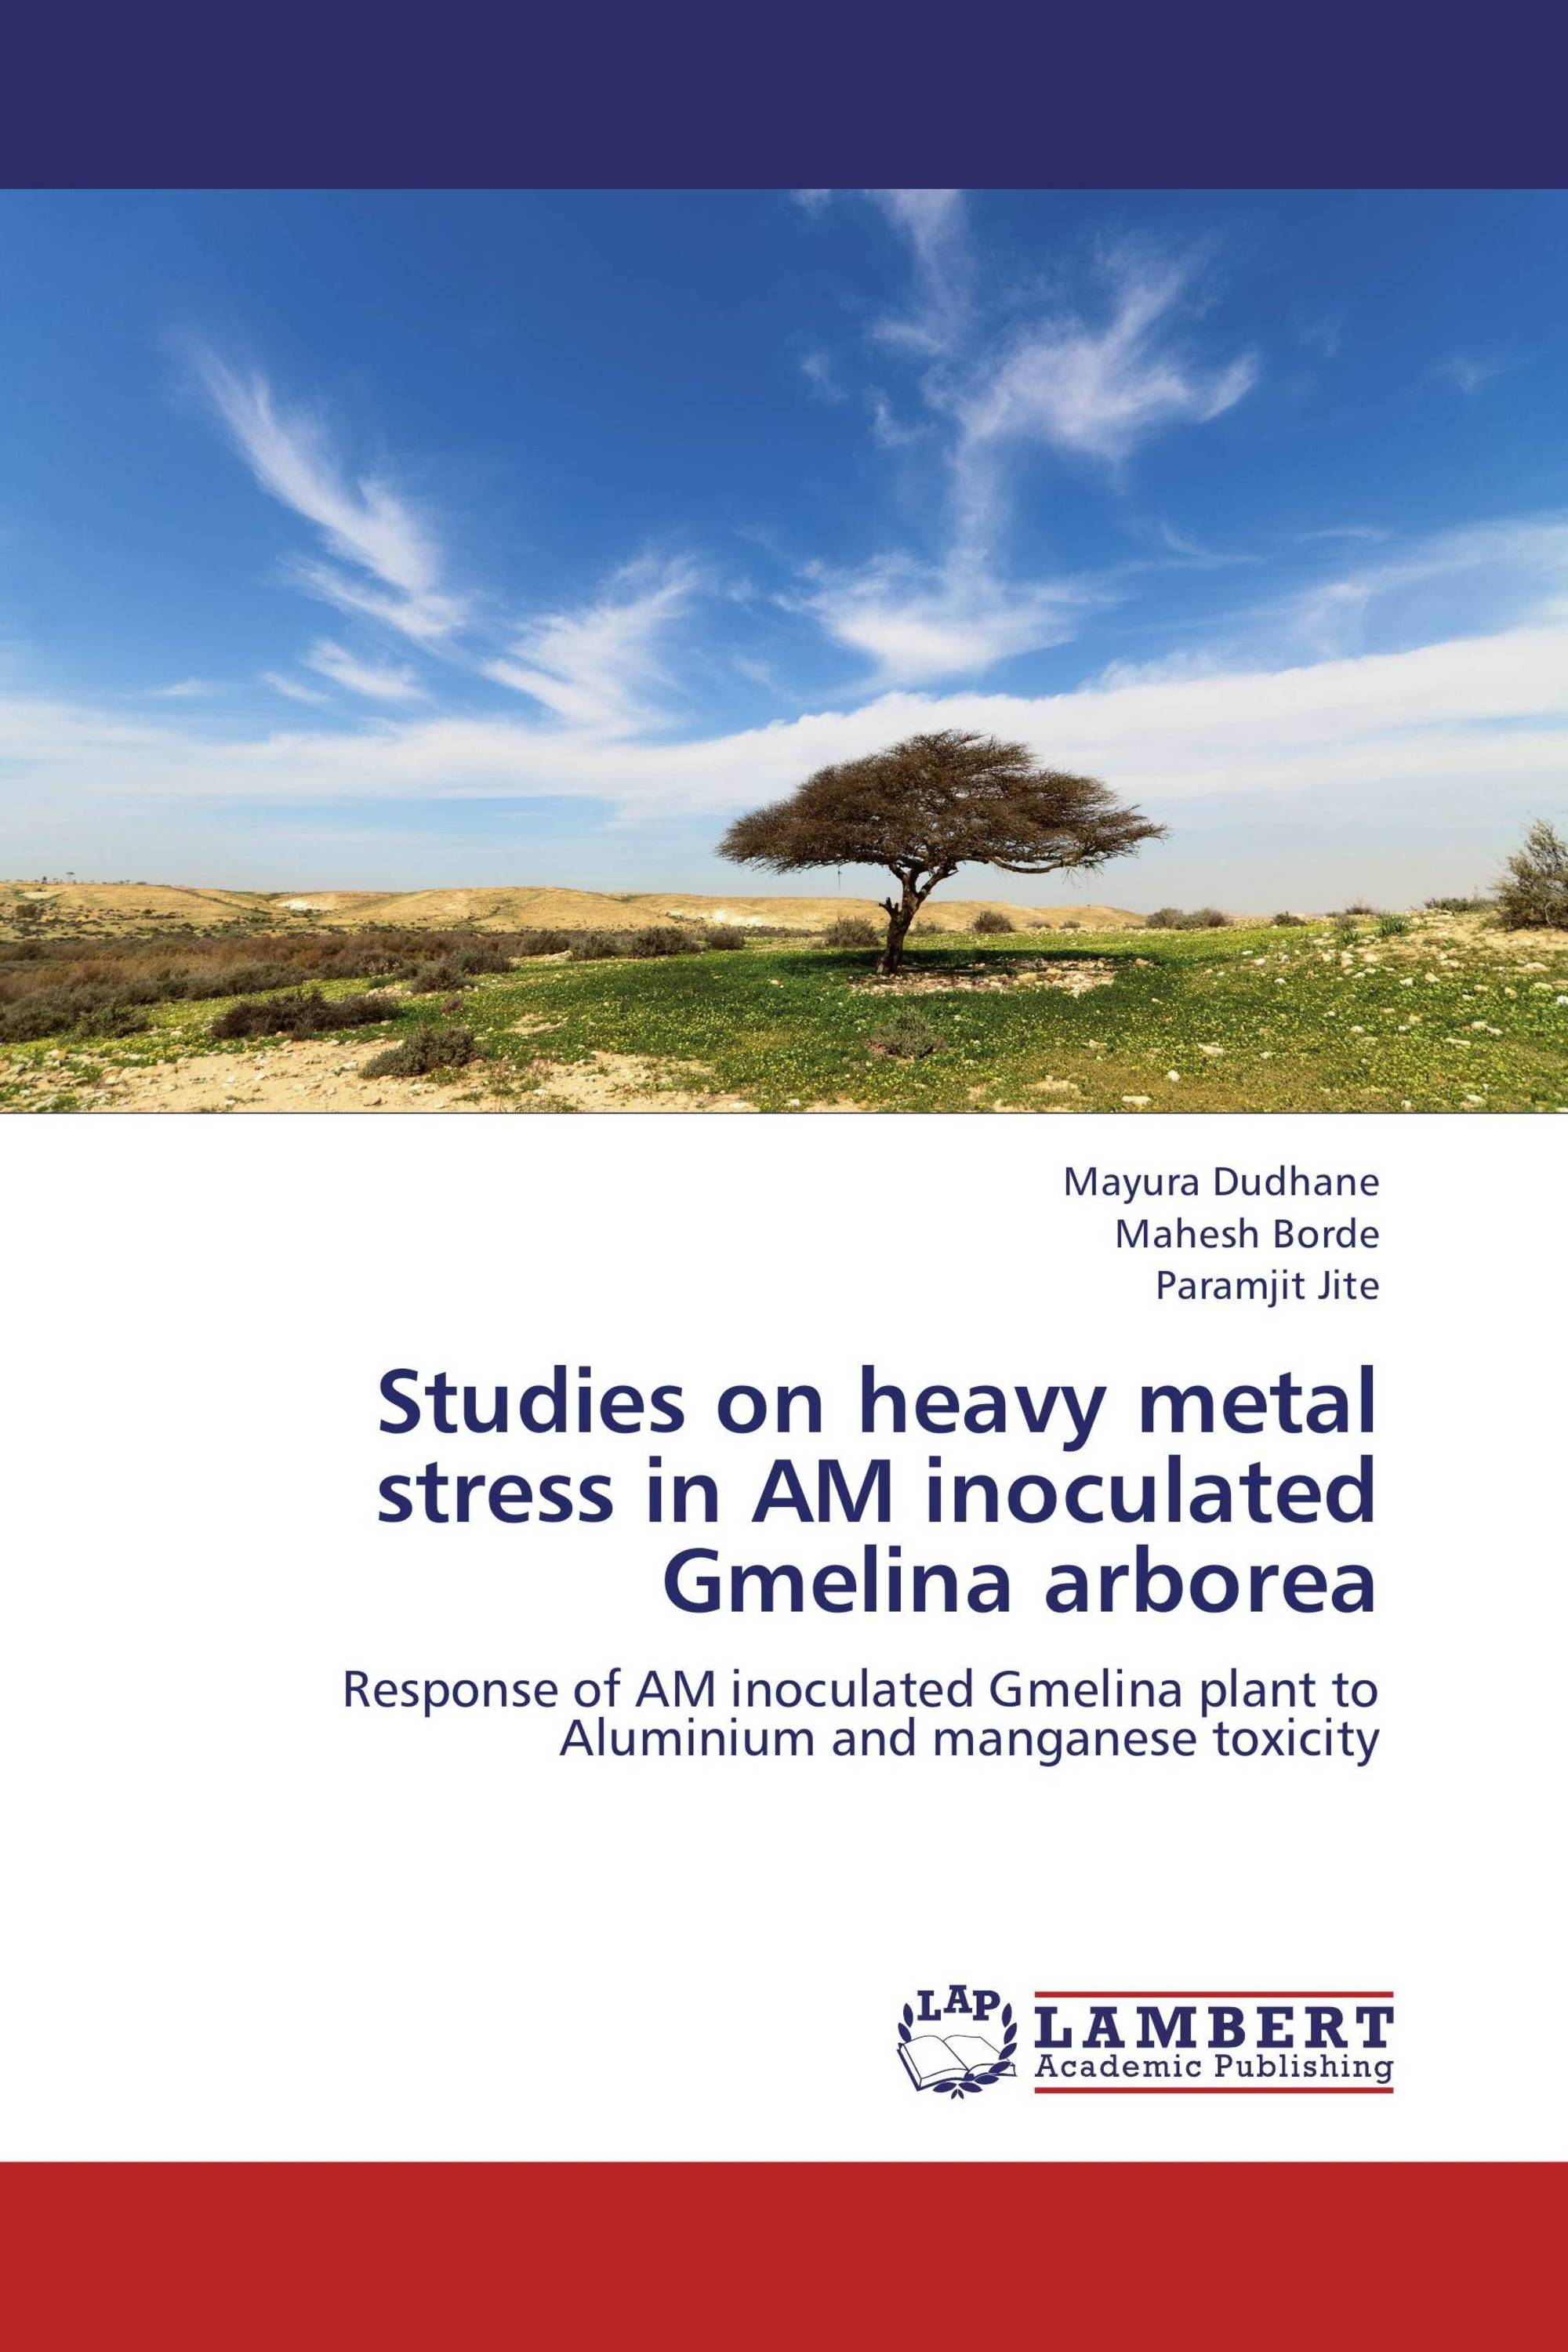 Studies on heavy metal stress in AM inoculated Gmelina arborea